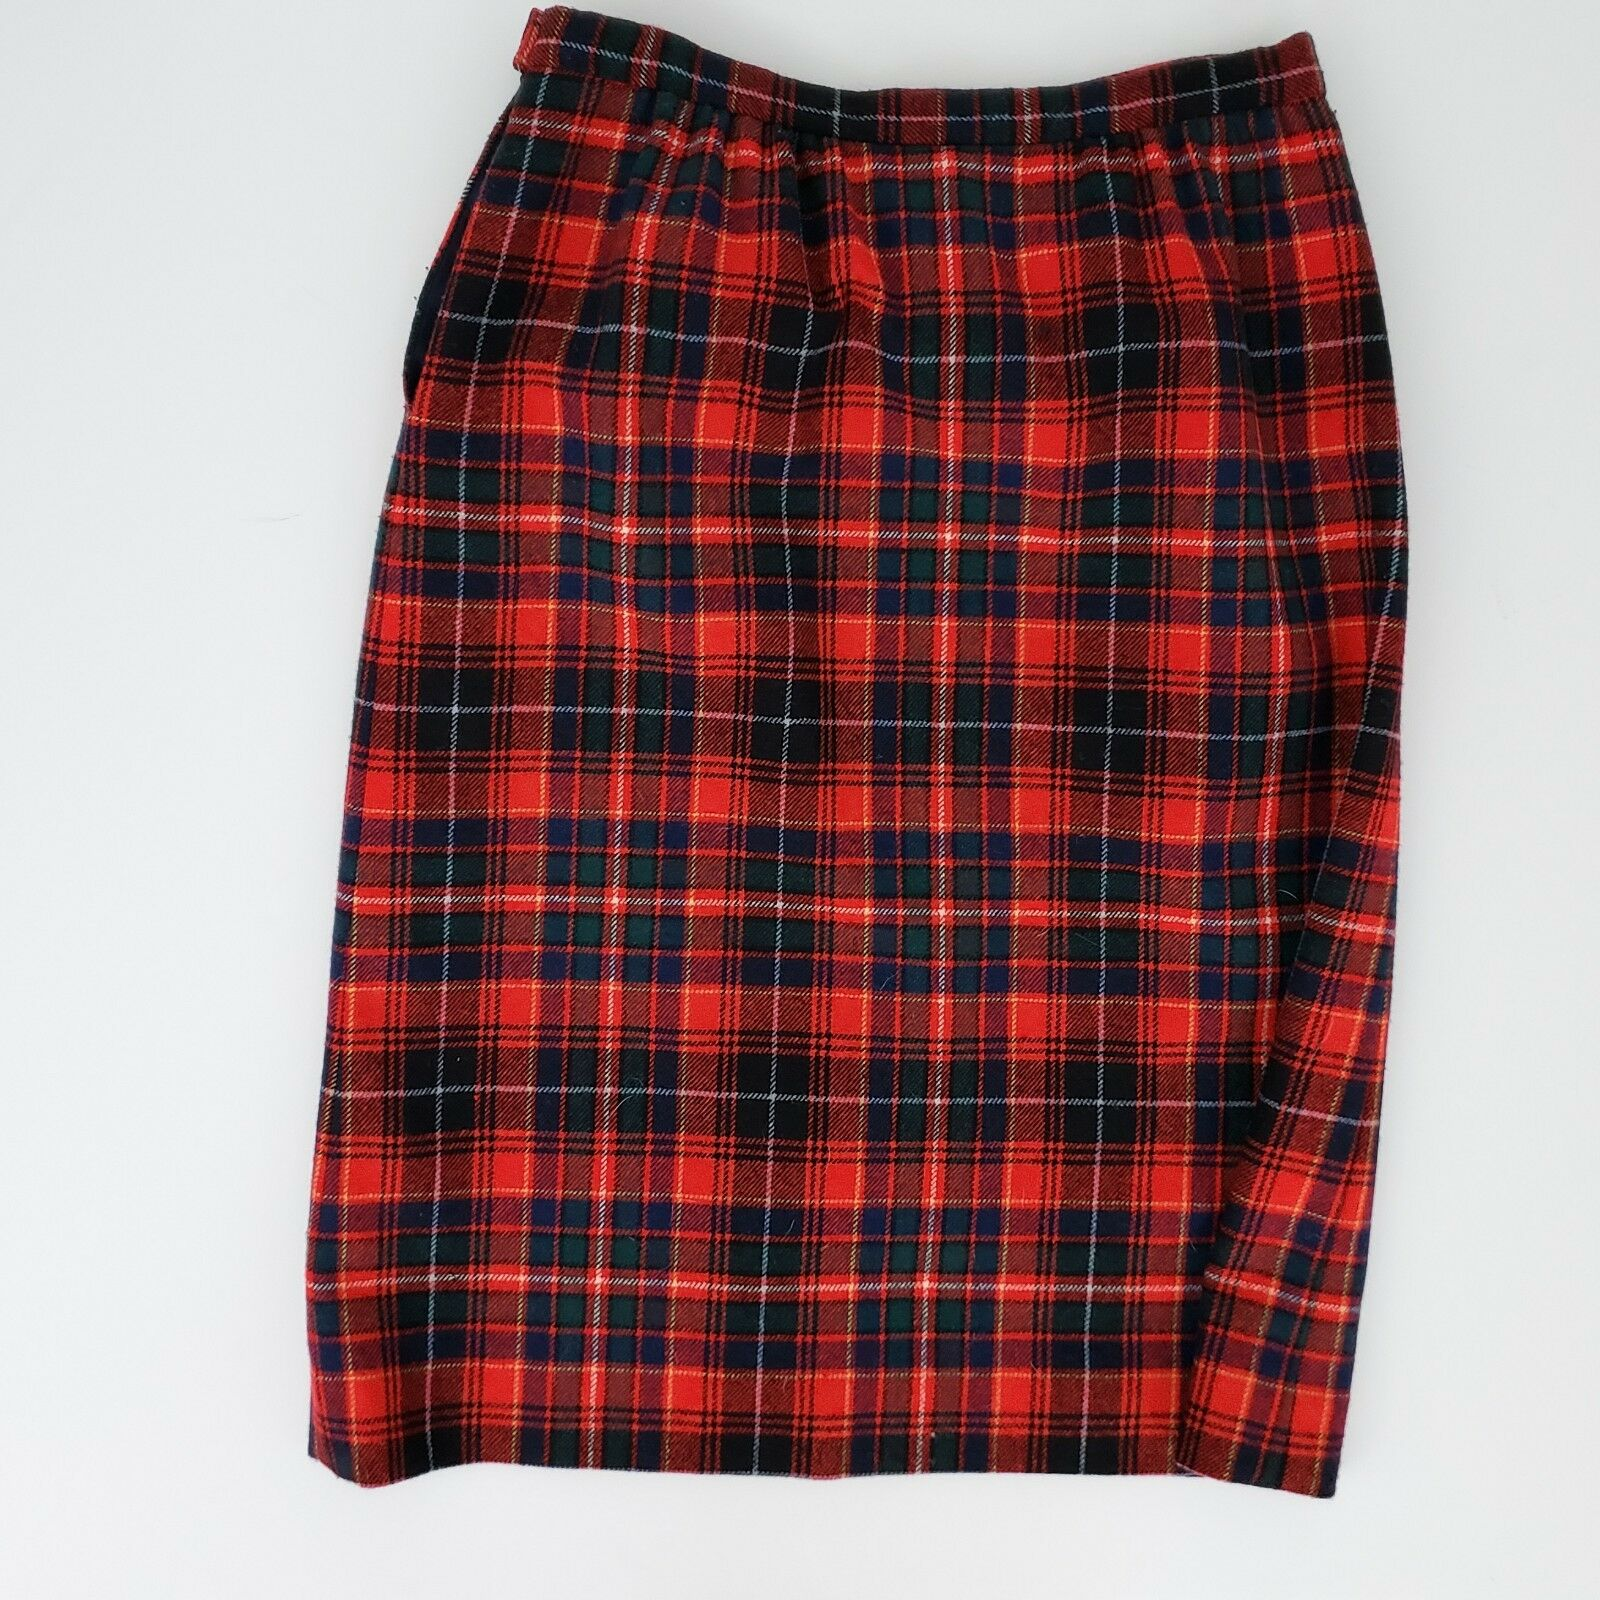 Vintage Pendelton Red, bluee & Green Pencil Skirt Authentic MacInnes Tartan Plaid